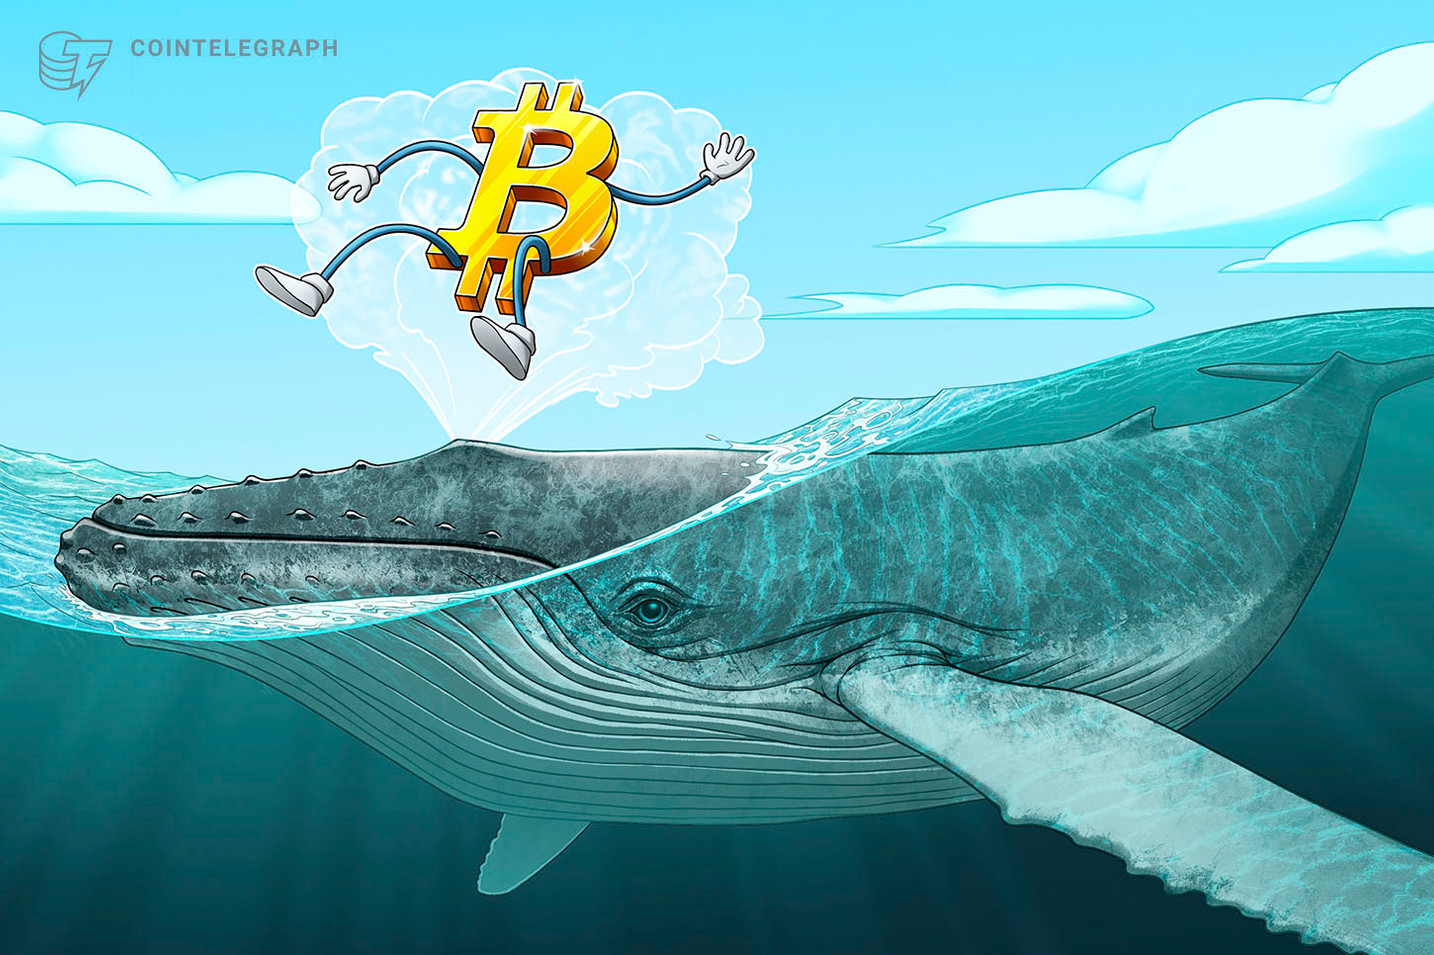 Messari: 1% Allocation From Institutions Could Drive BTC to $50,000